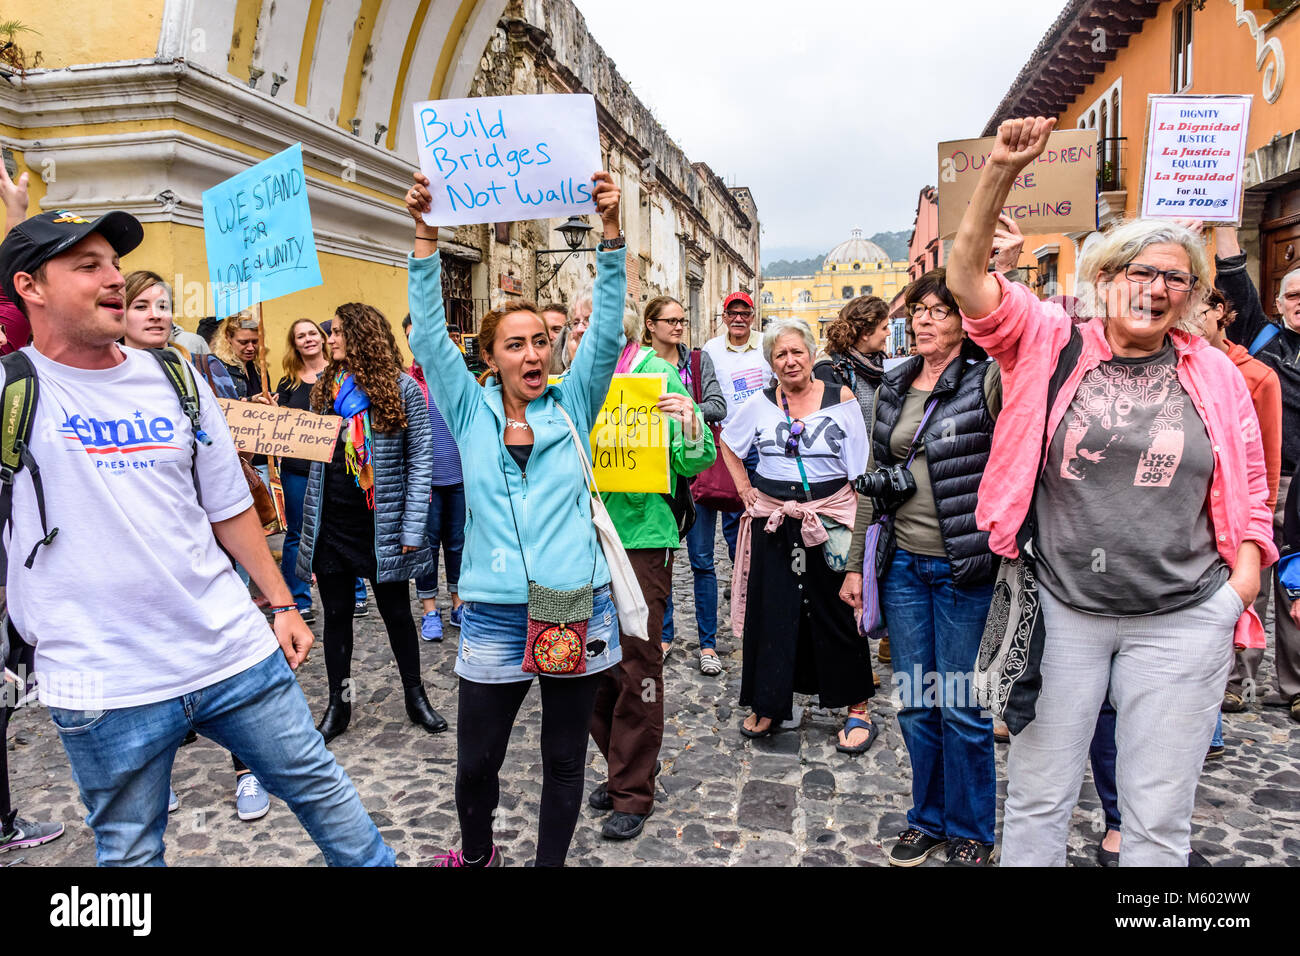 Antigua, Guatemala - January 21, 2017: People holds sign in peaceful Women's March as part of global protest - Stock Image